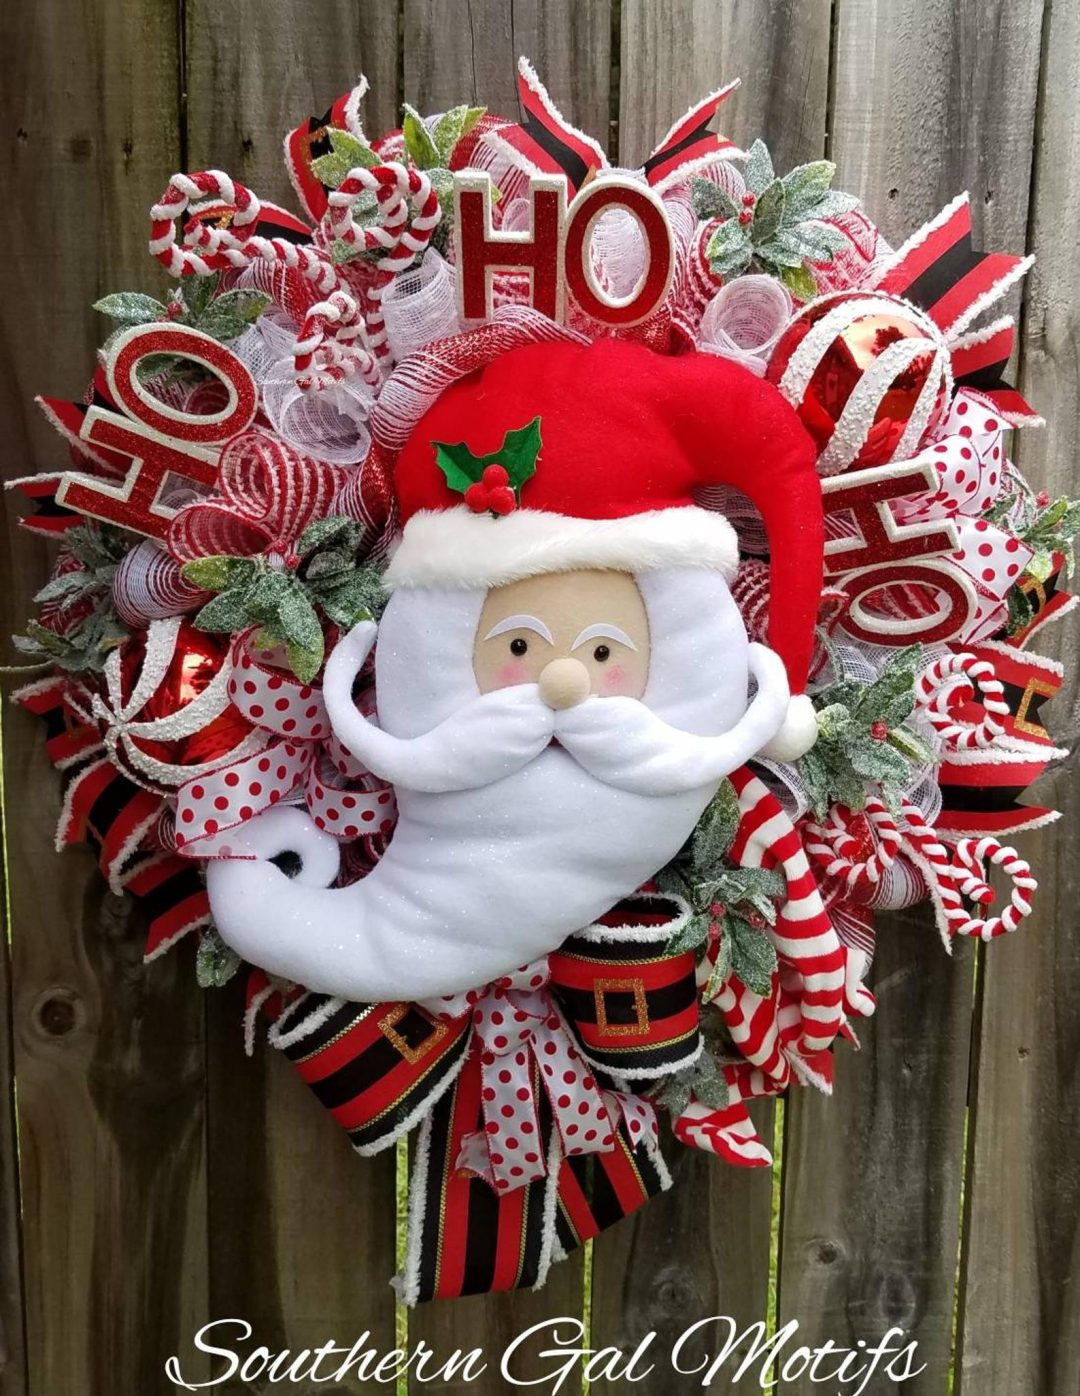 Red Santa Claus wreath with candy canes